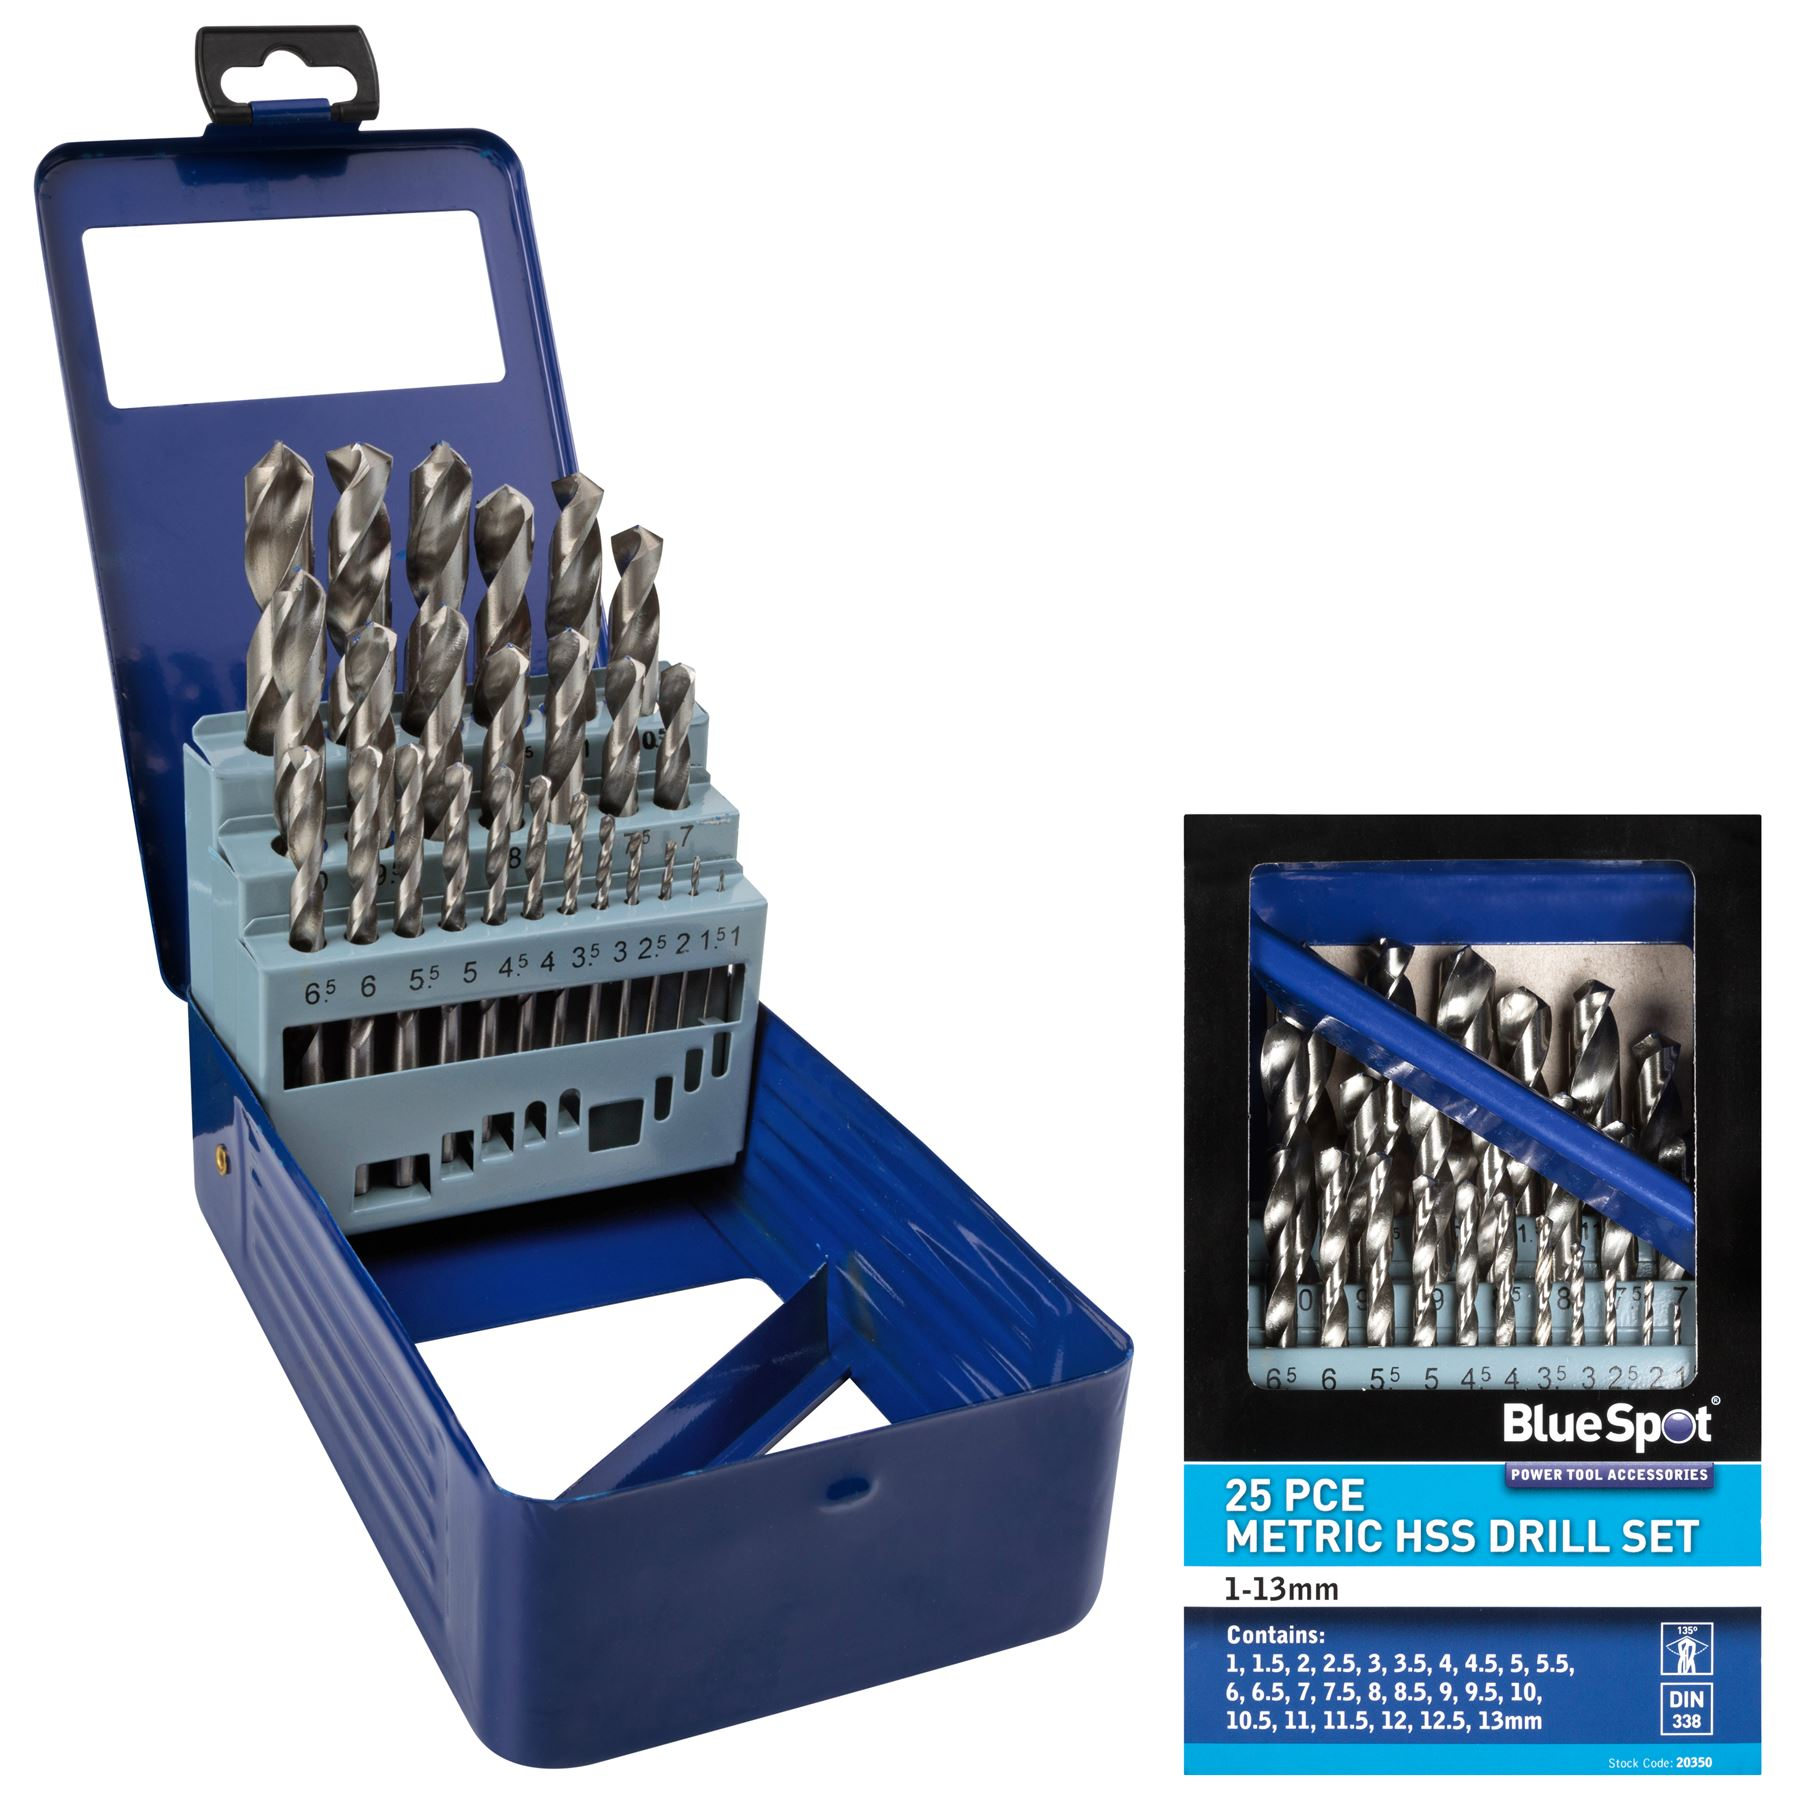 Metal HSS Metric Drill Bits set 10pc Packs 1 to 4.8mm for Steel /& Wood